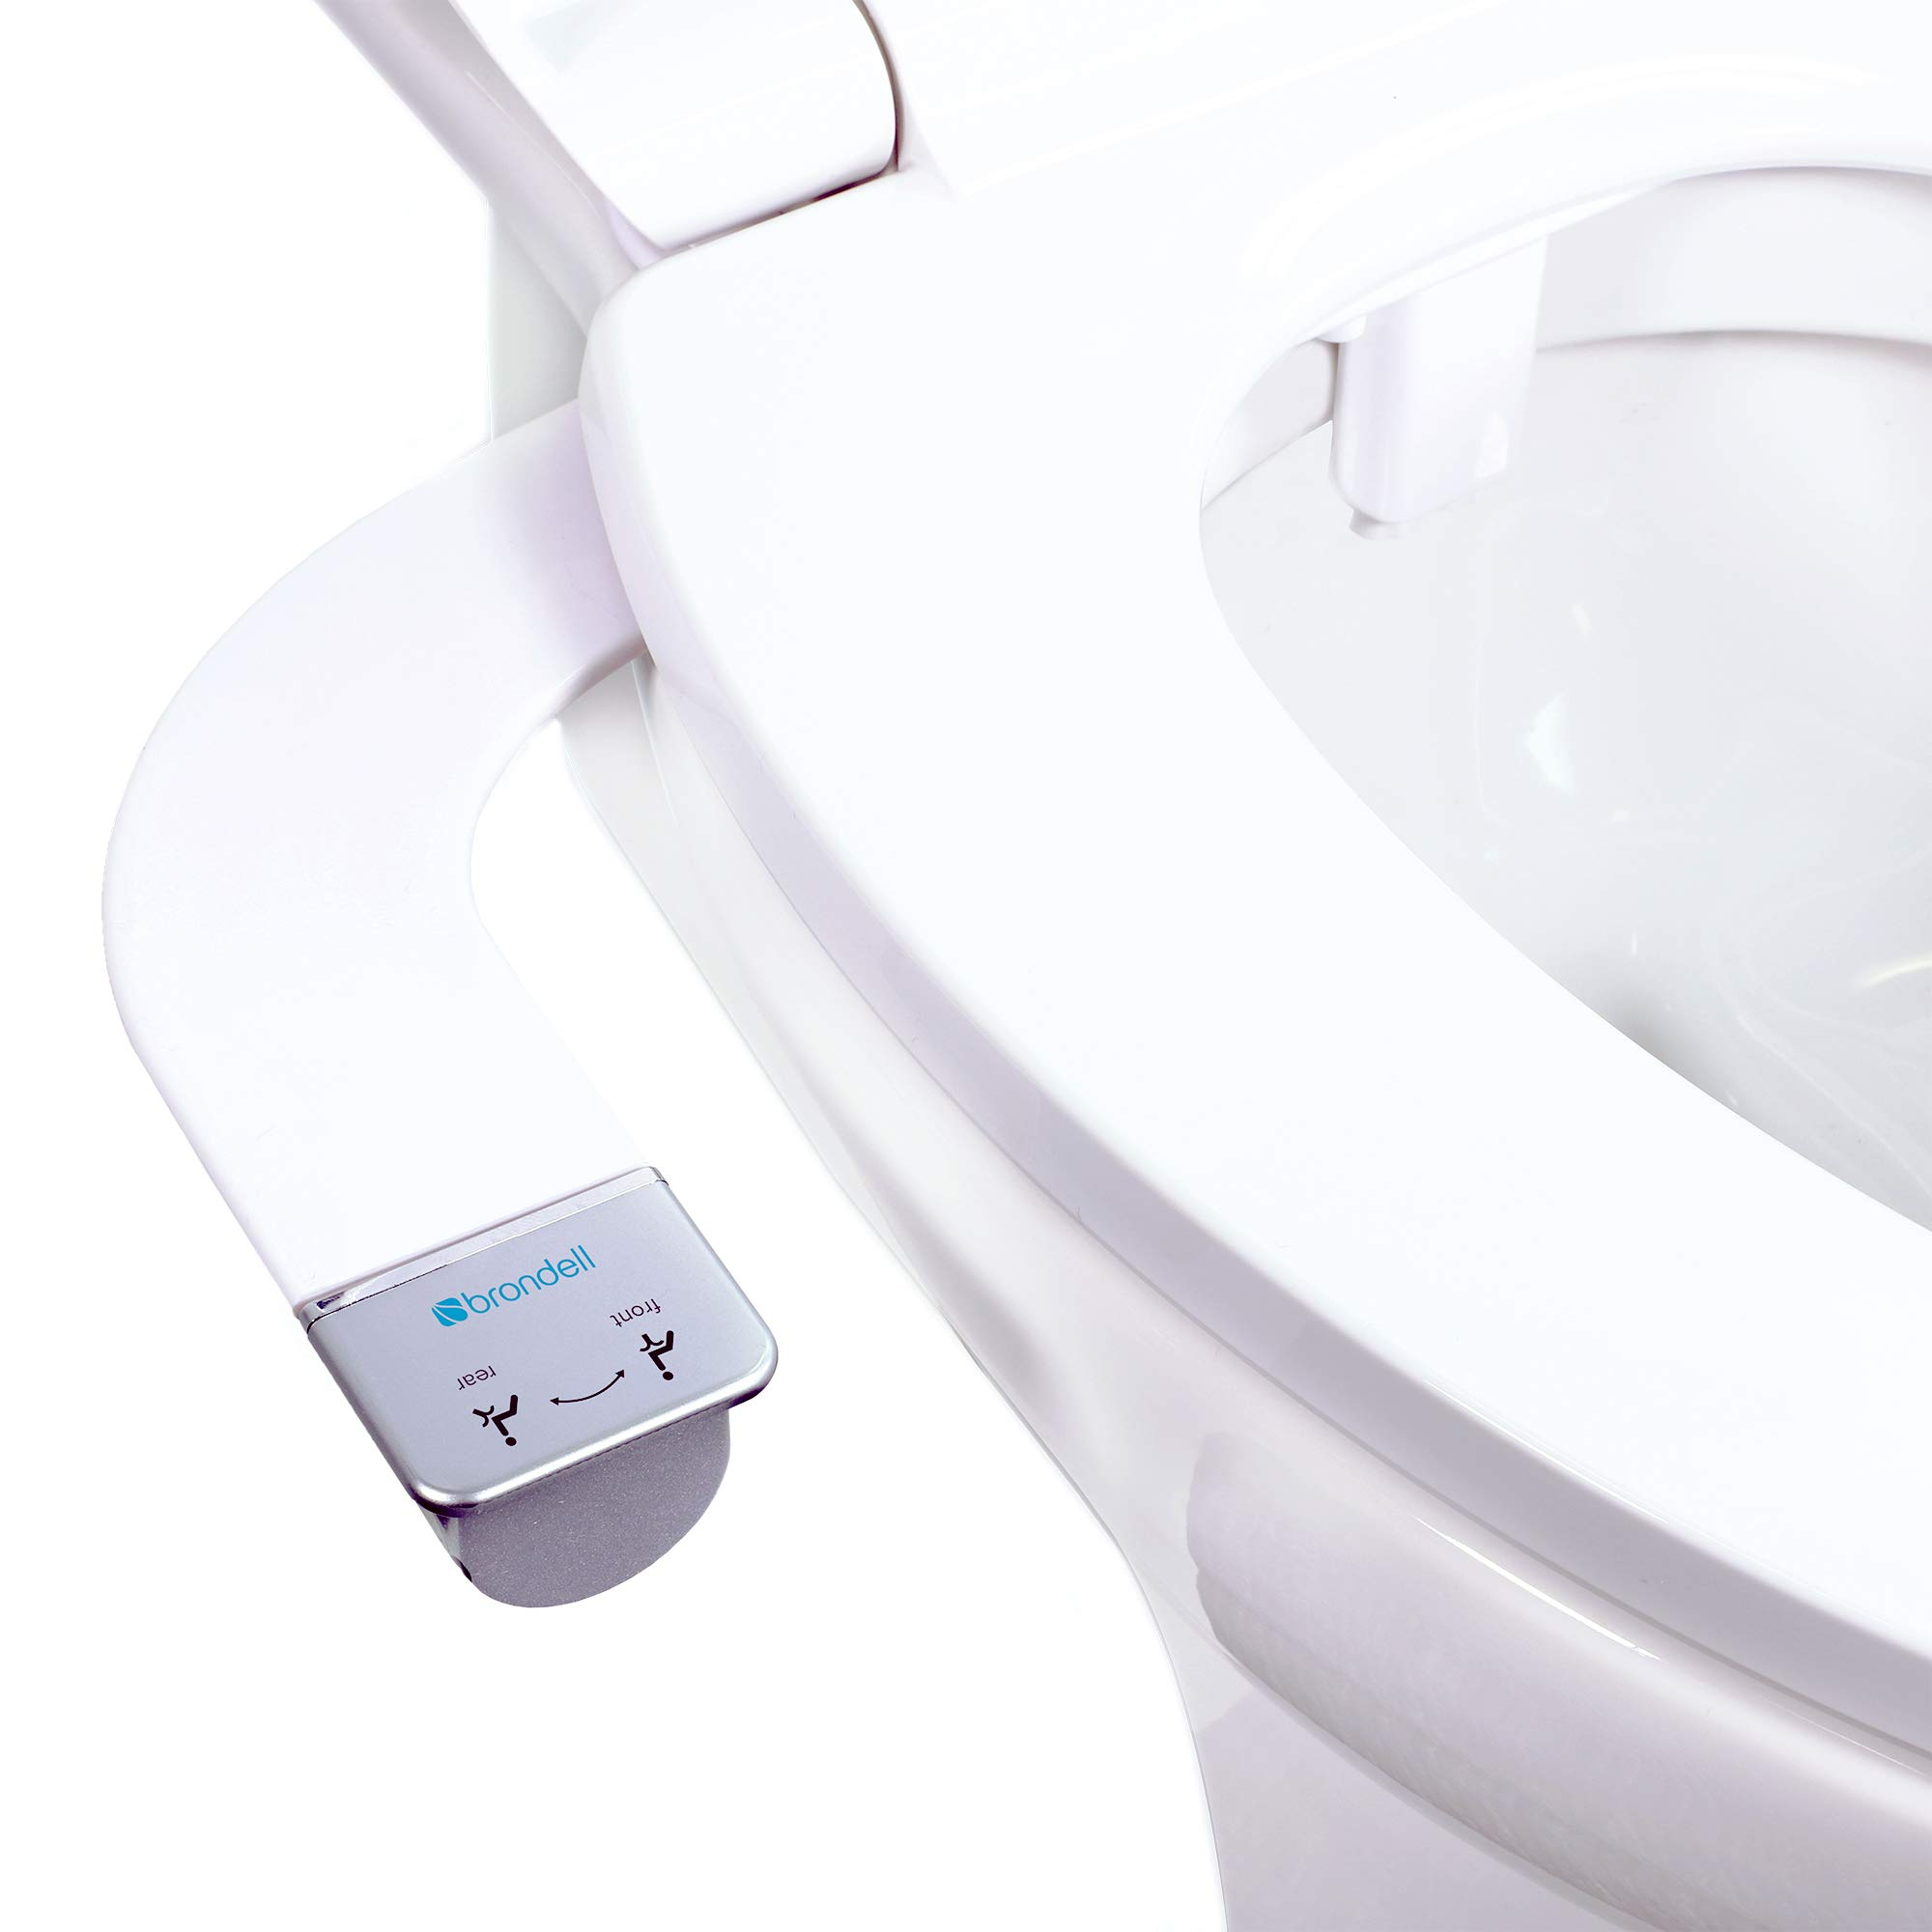 Brondell Bidet – Thinline Dual Nozzle SimpleSpa SS-250 Fresh Water Spray Non-Electric Bidet Toilet Attachment in White with SafeCore Internal Valve and Nozzle Guard